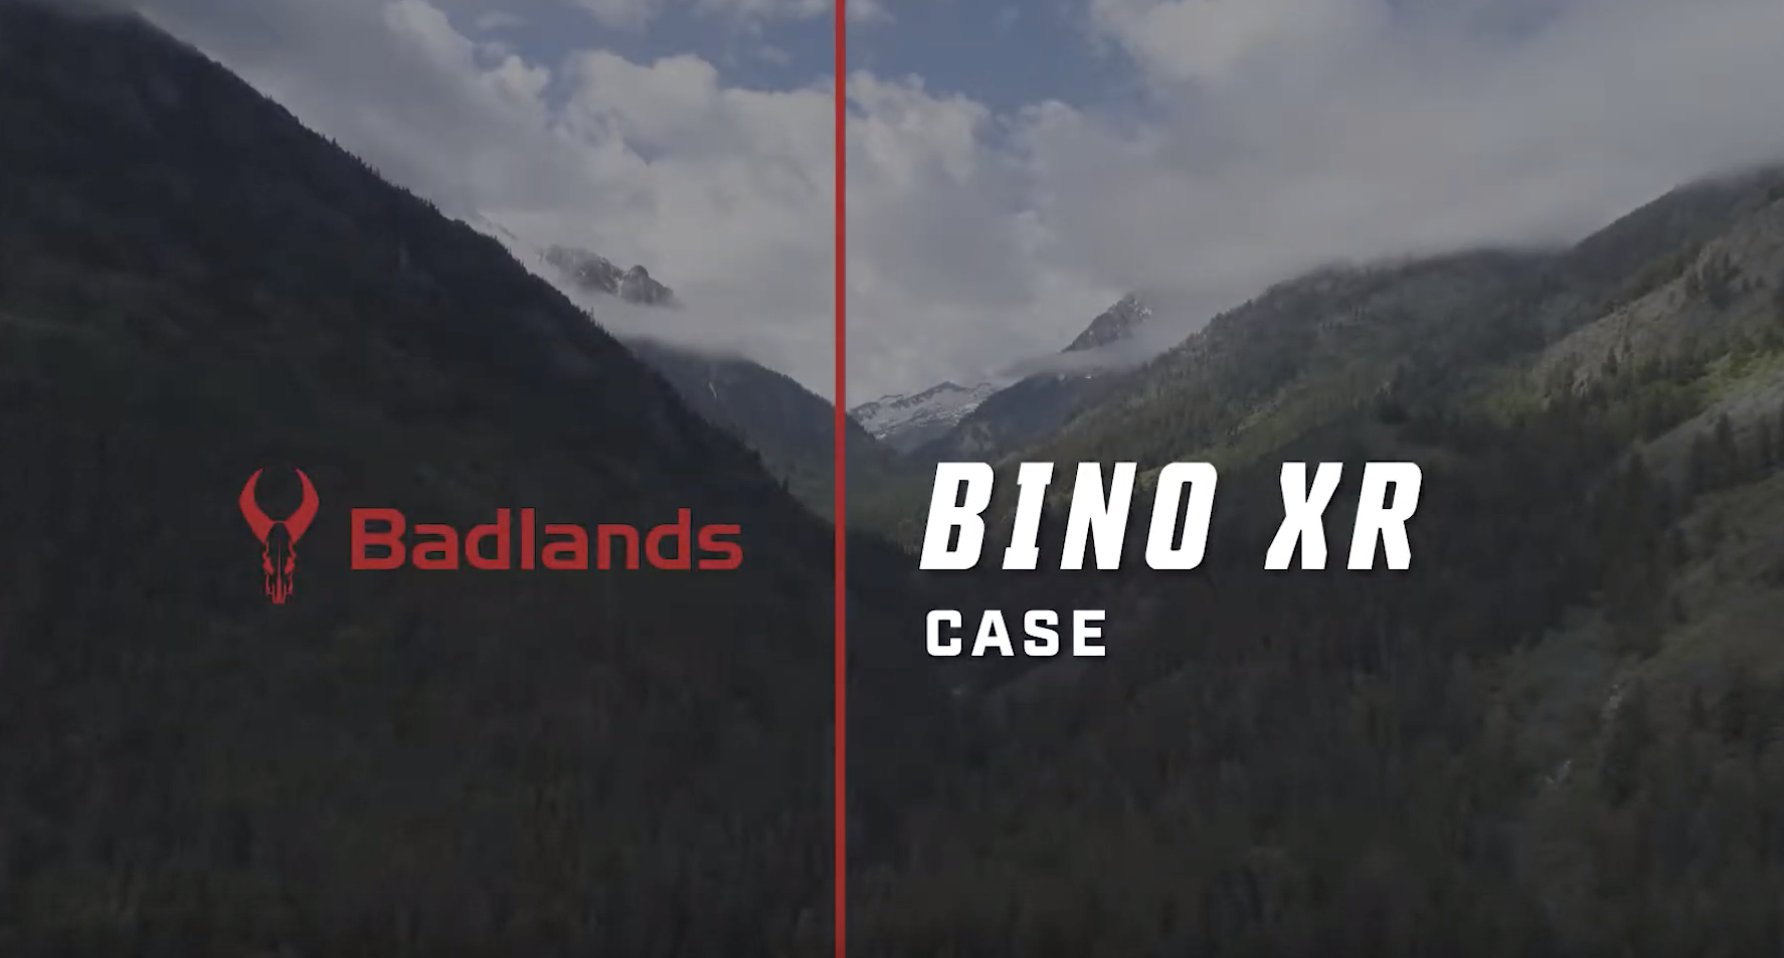 Learn More about the Bino XR Case